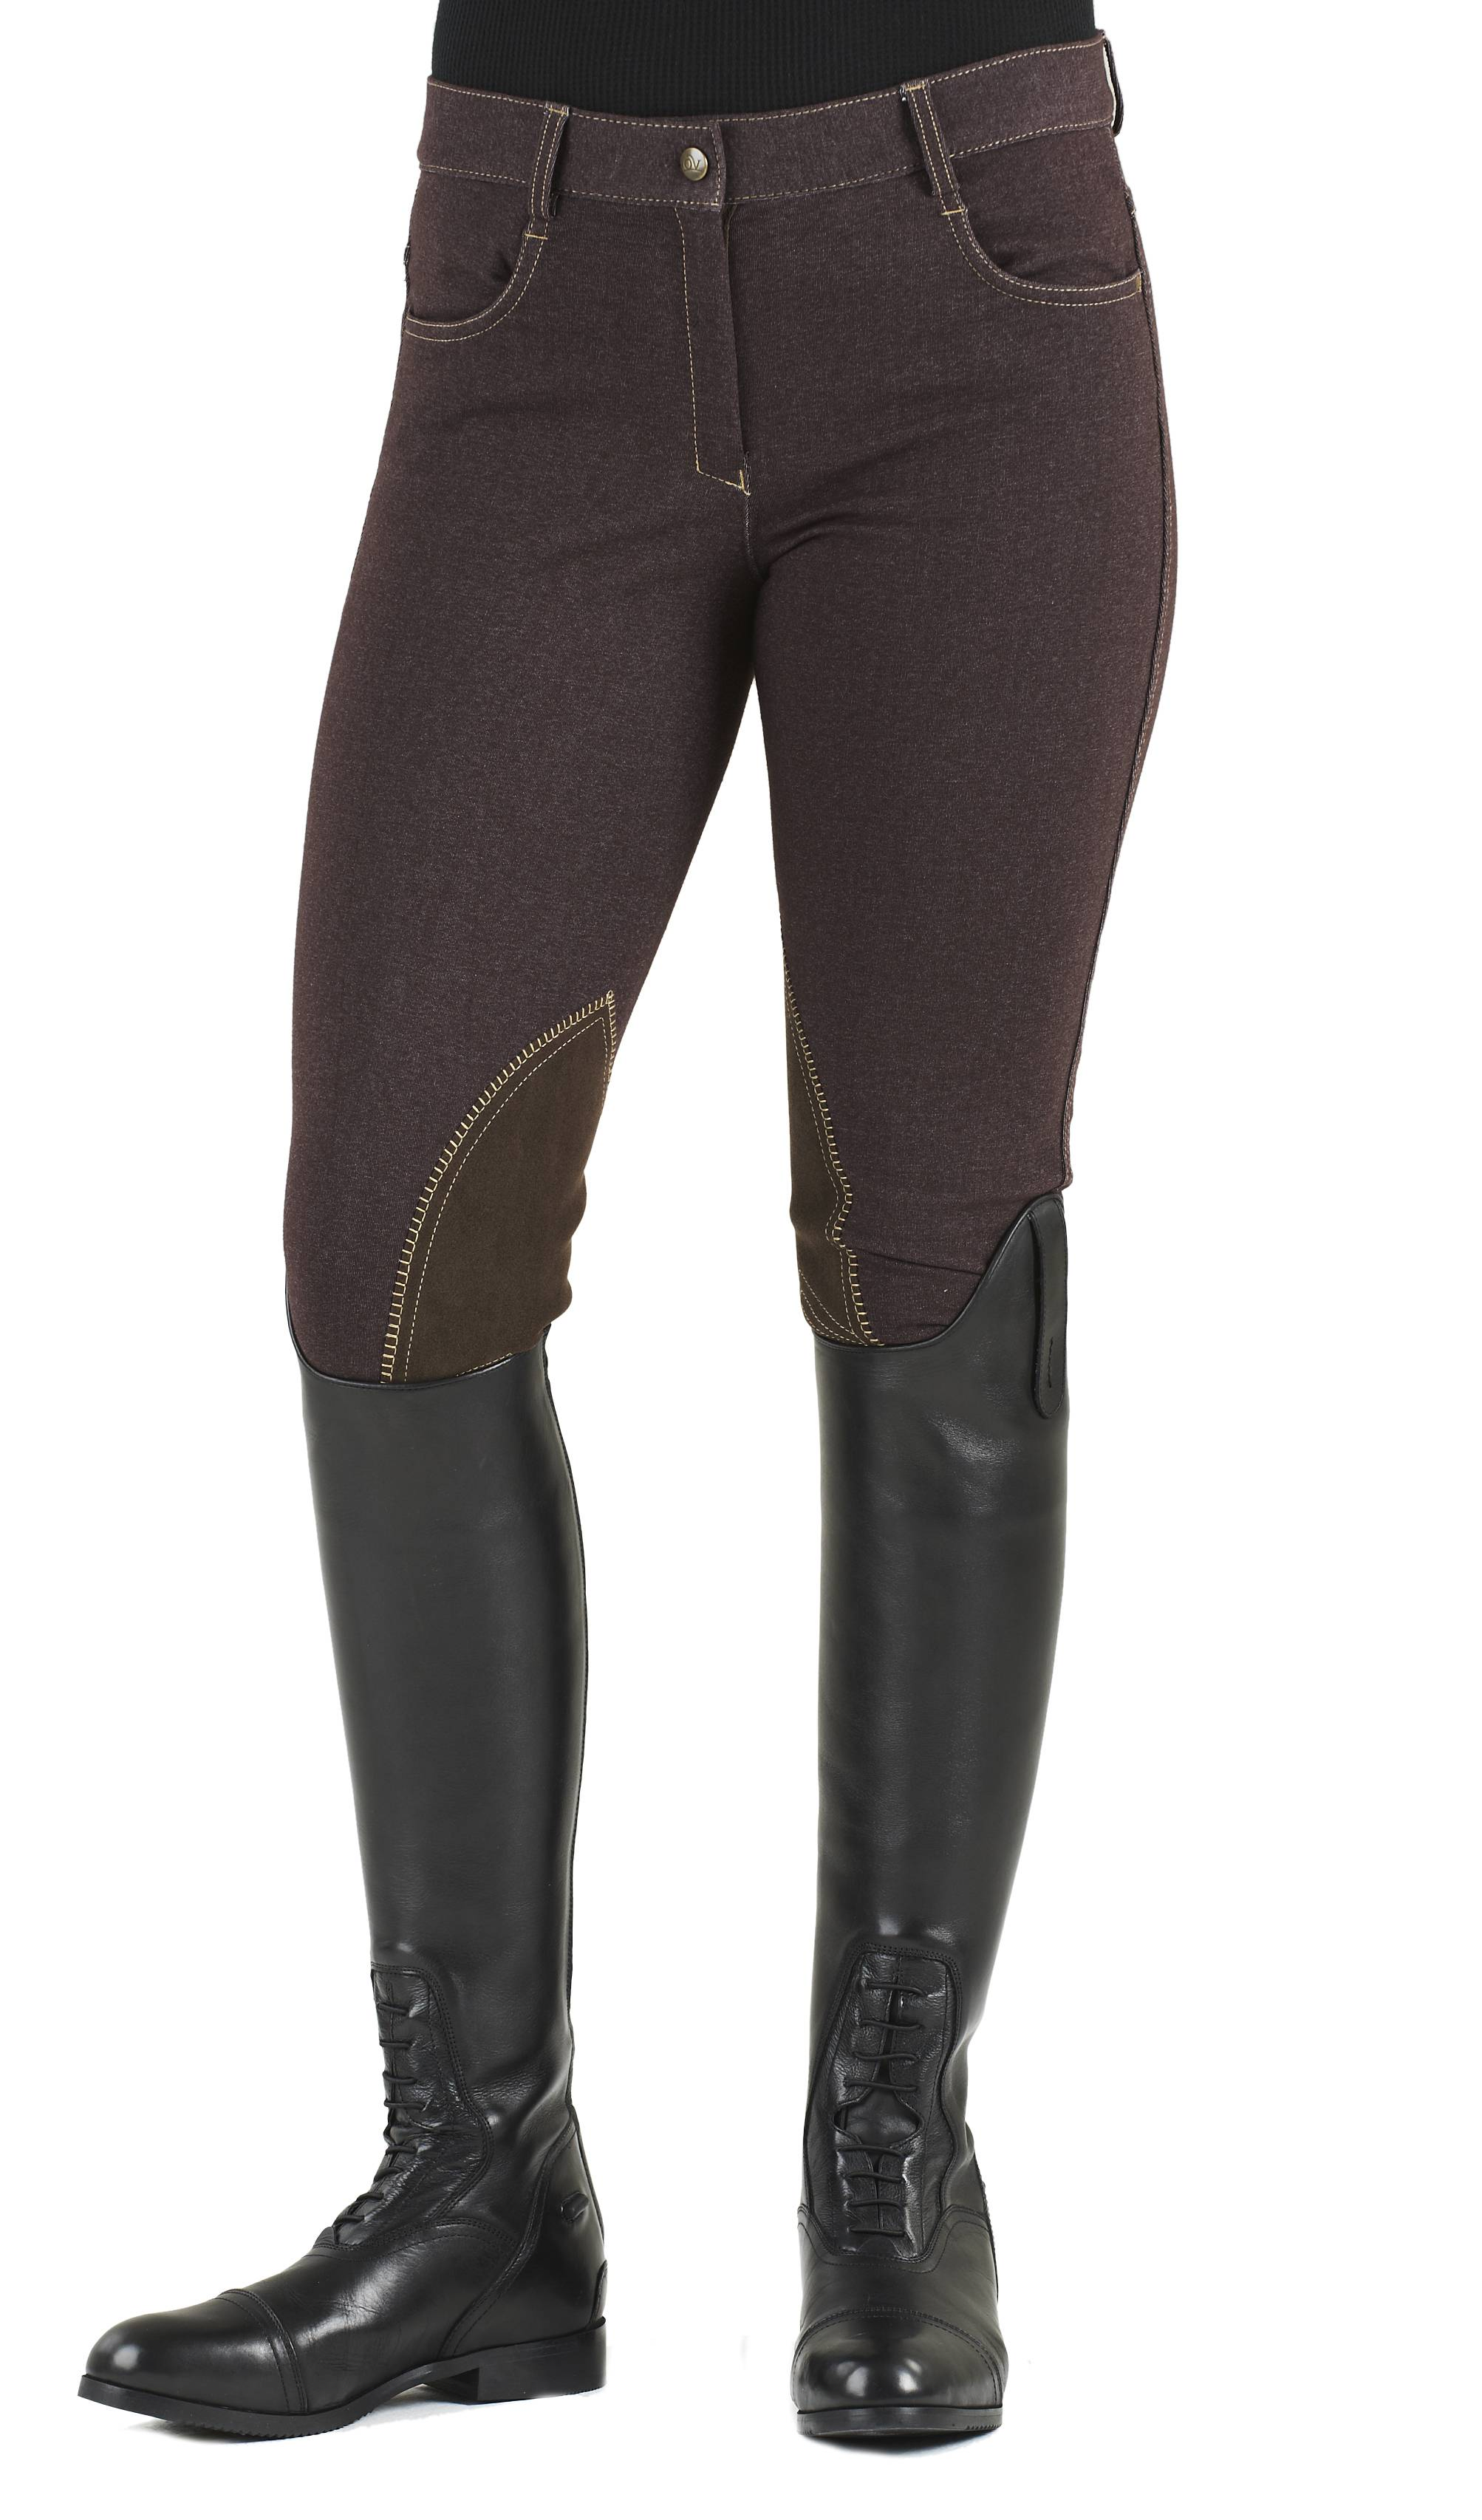 Ovation Ladies' Euro Jean Zip Front Knee Patch Breech